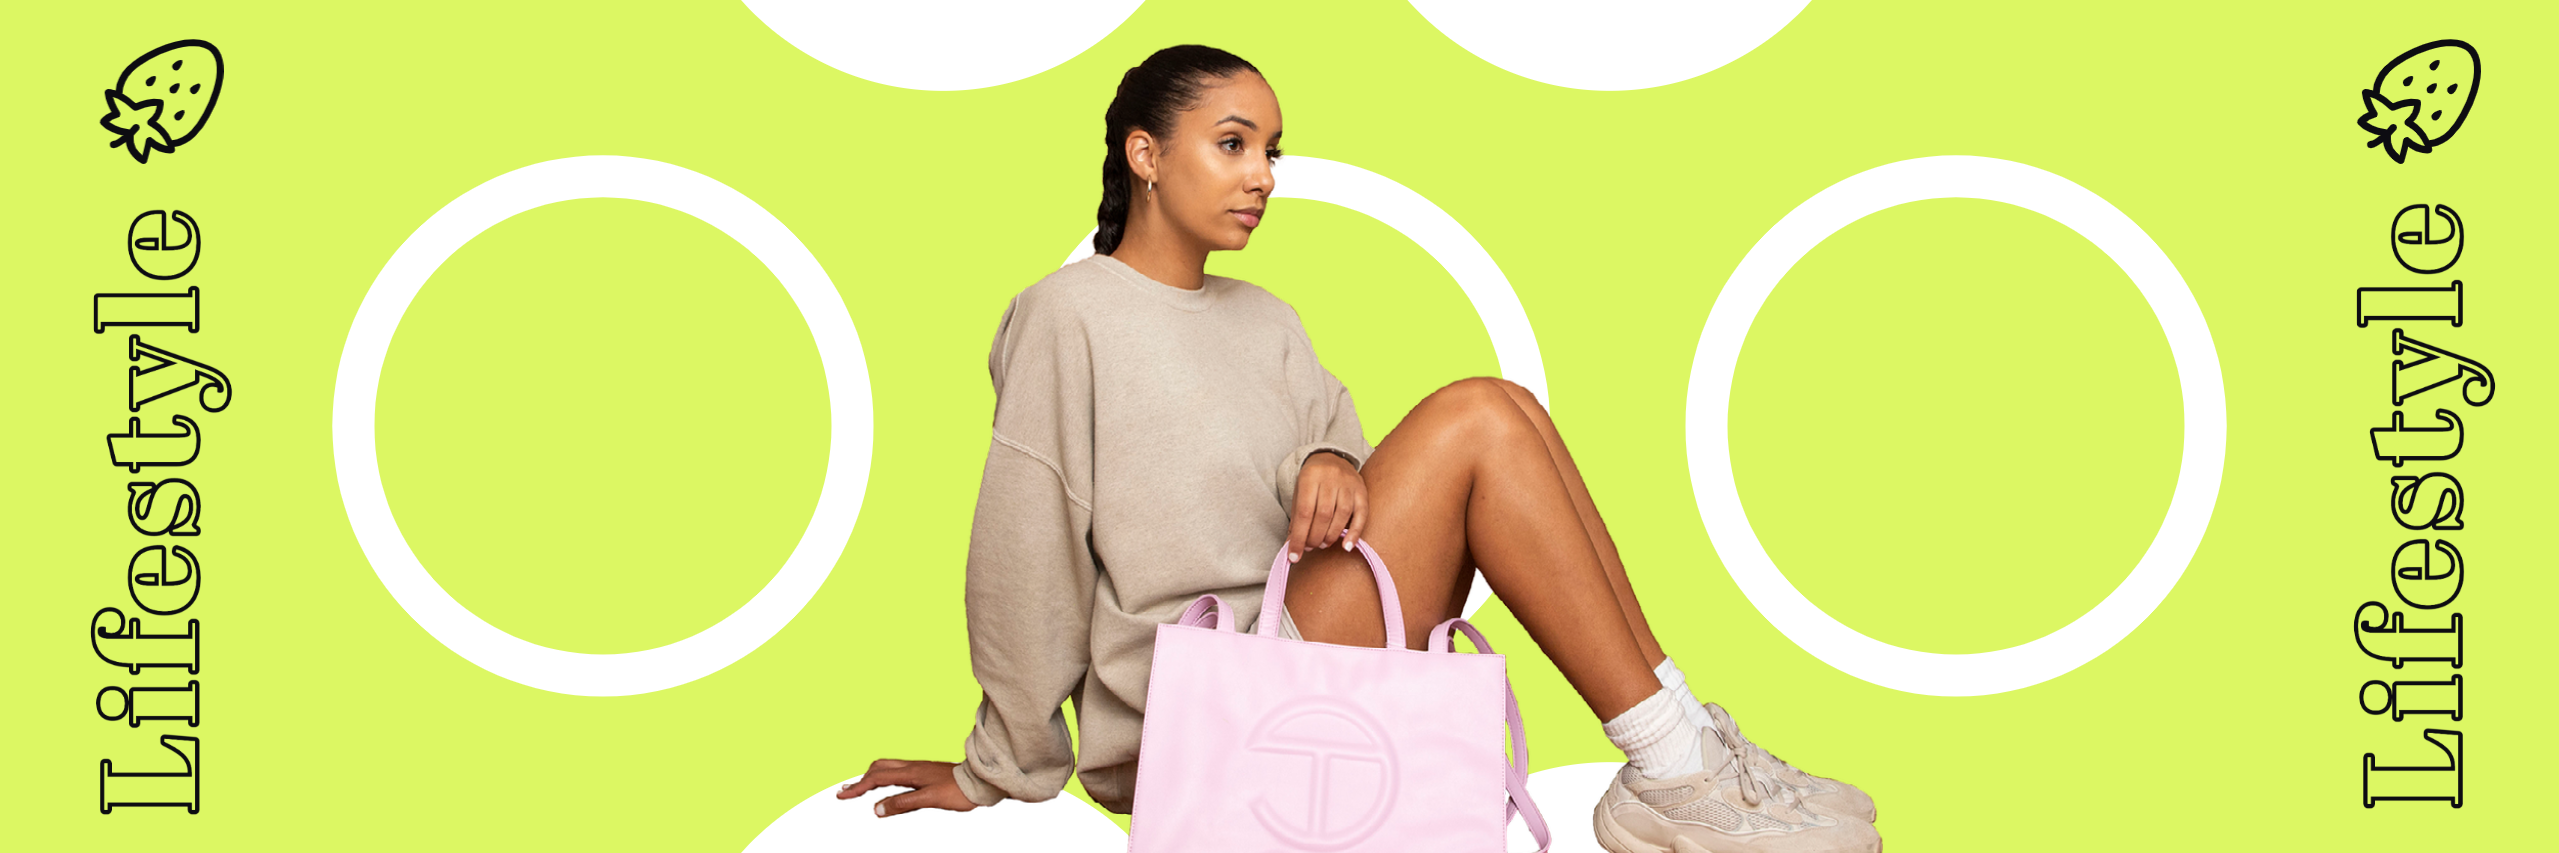 Lifestyle graphic with lime green background, black text, and model in the center